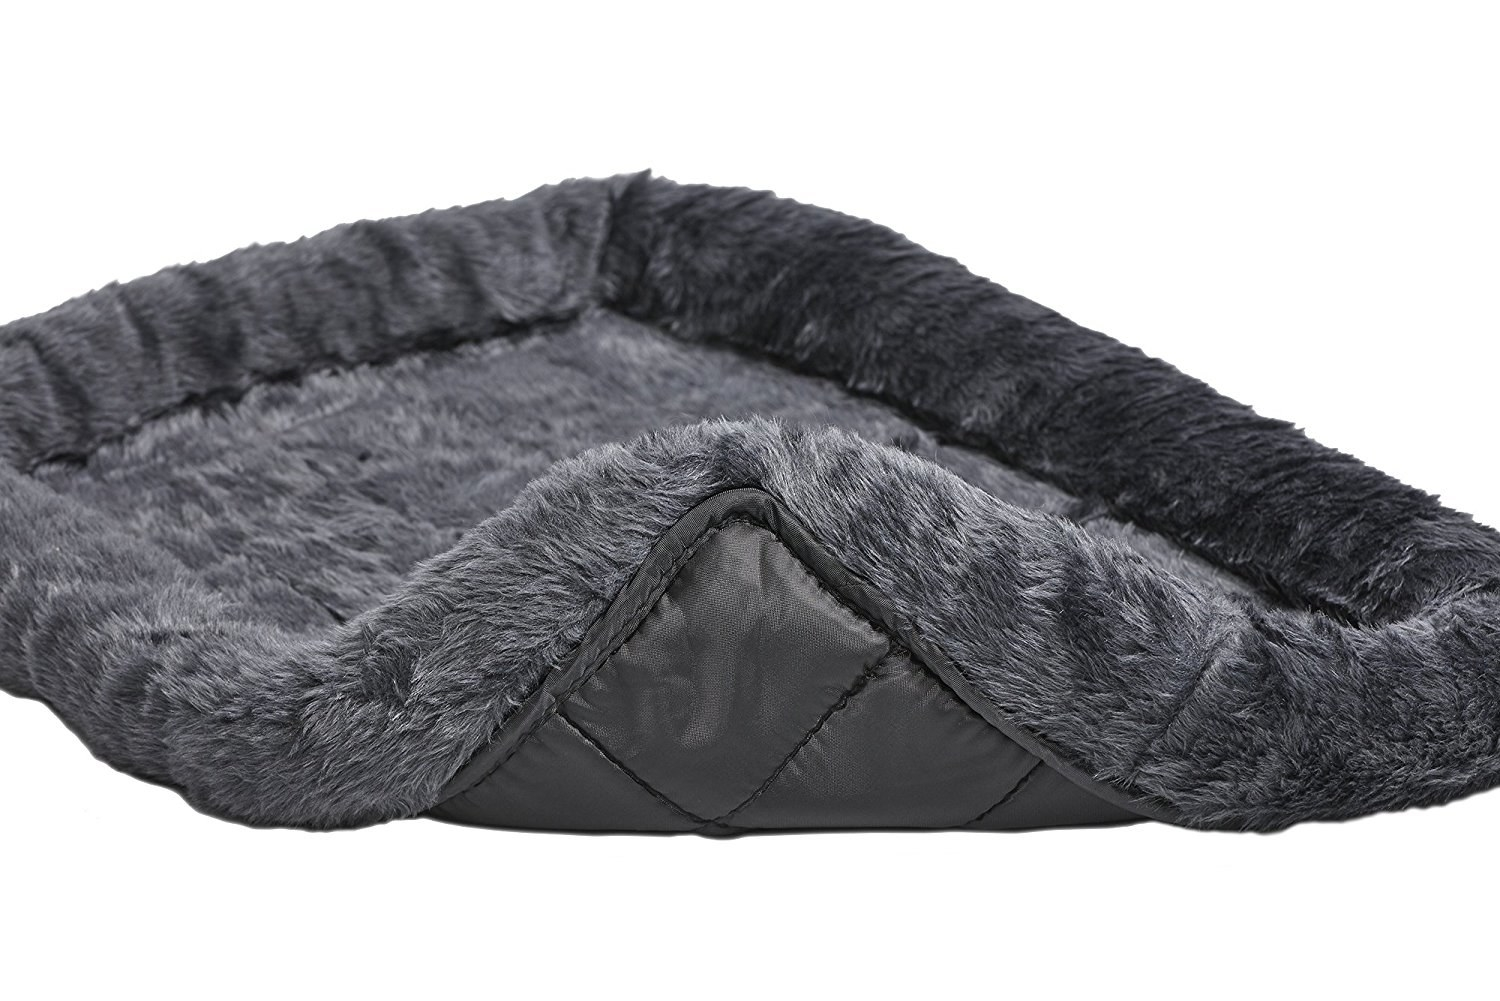 of best luxury beds puppy small like bed dogs dog pet elegant nap petmate human for world